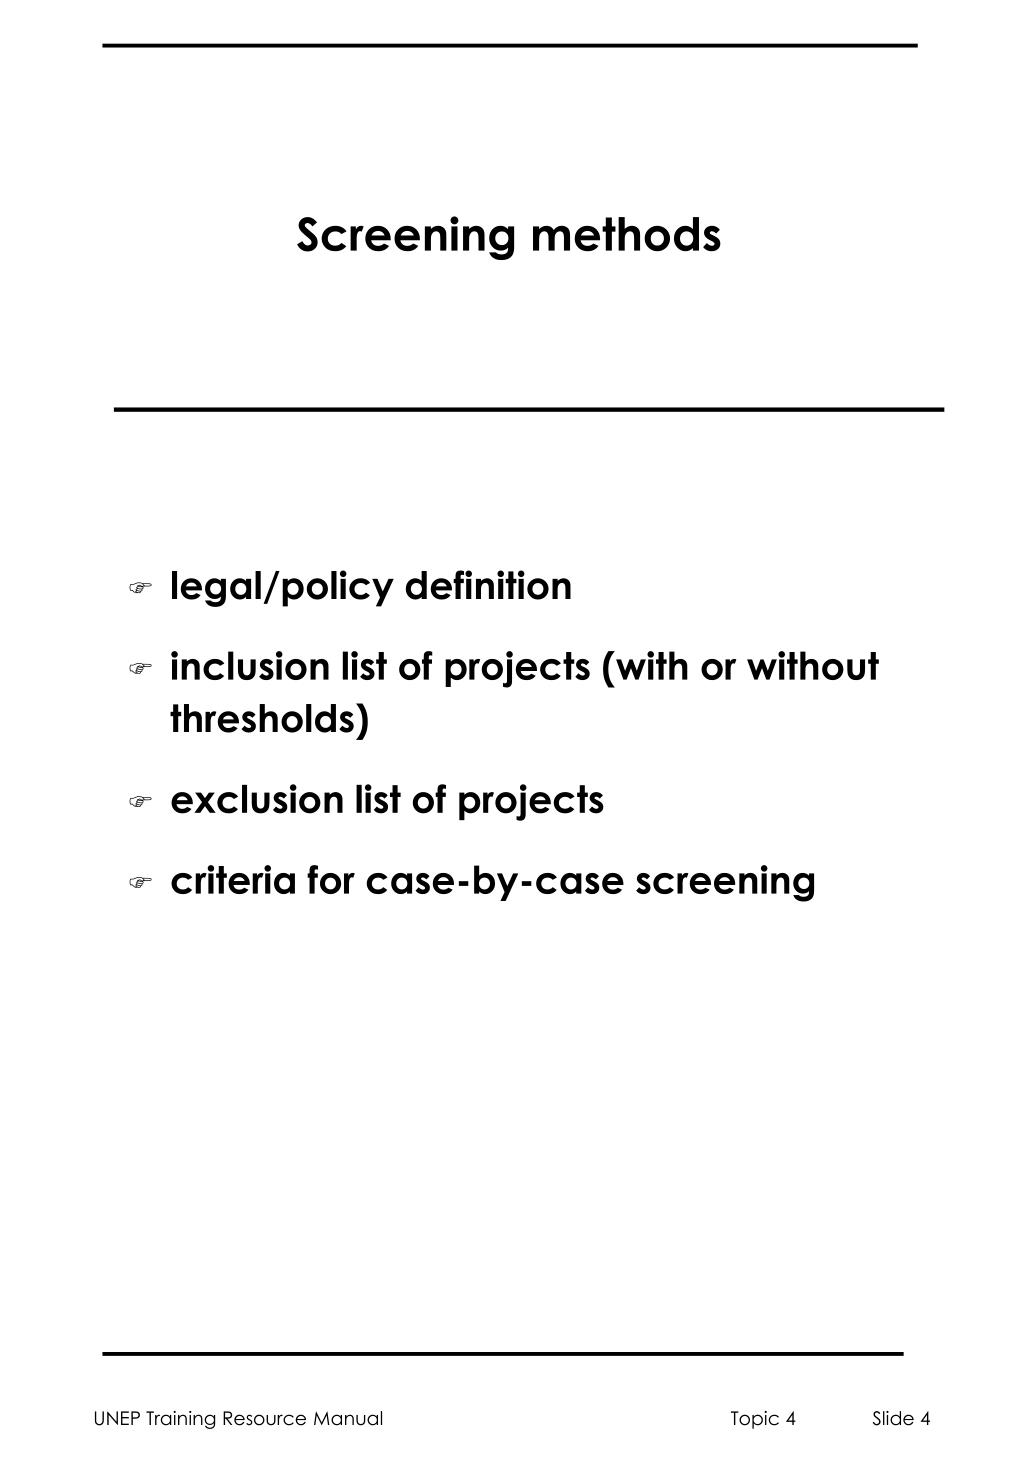 Screening methods